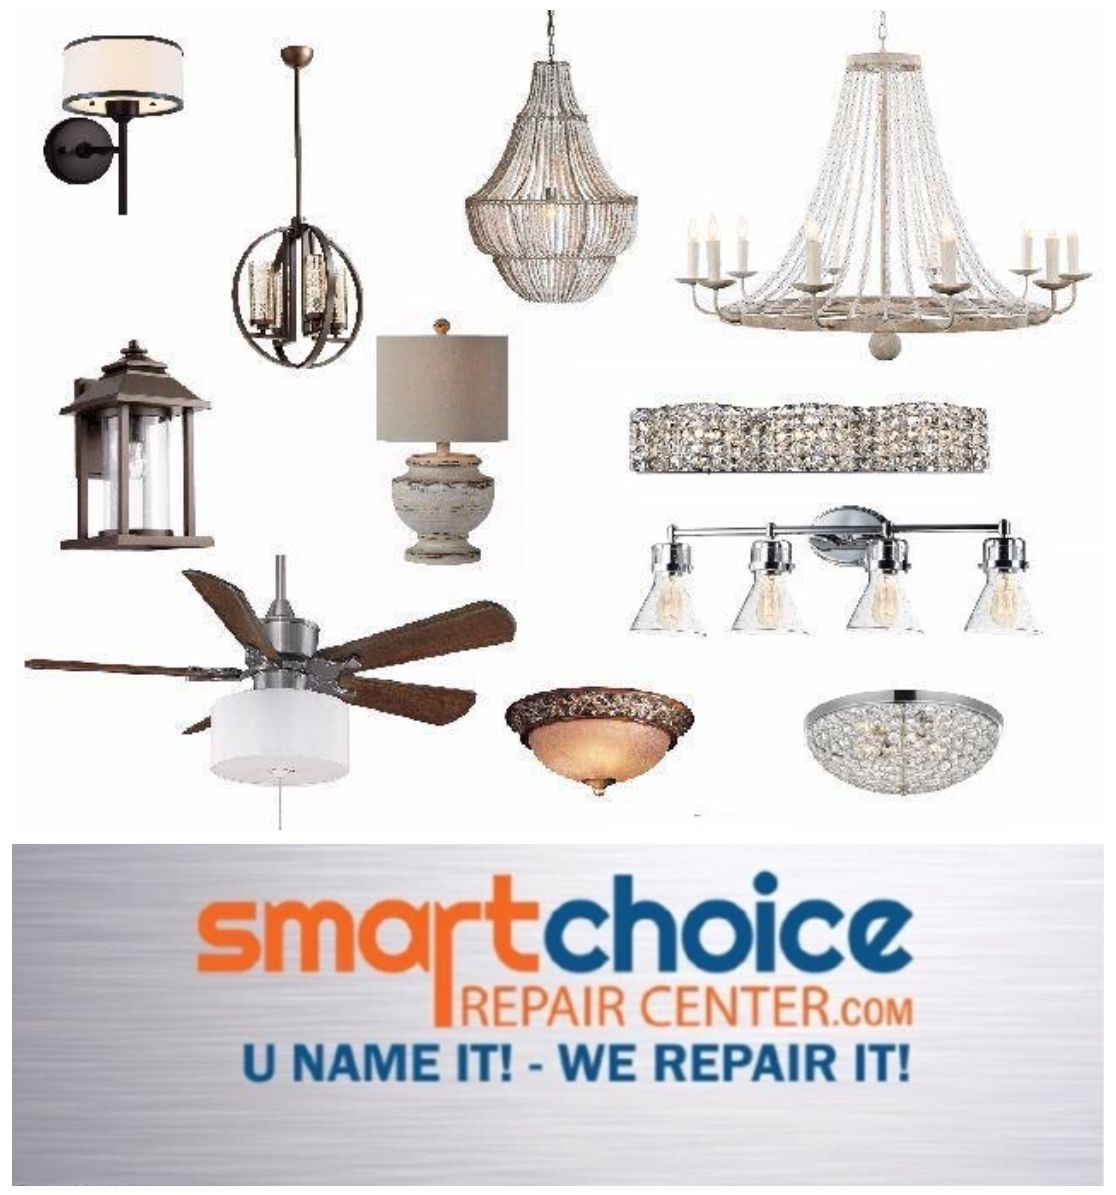 We Offer A Complete Line Of Services In Lamp Rewiring